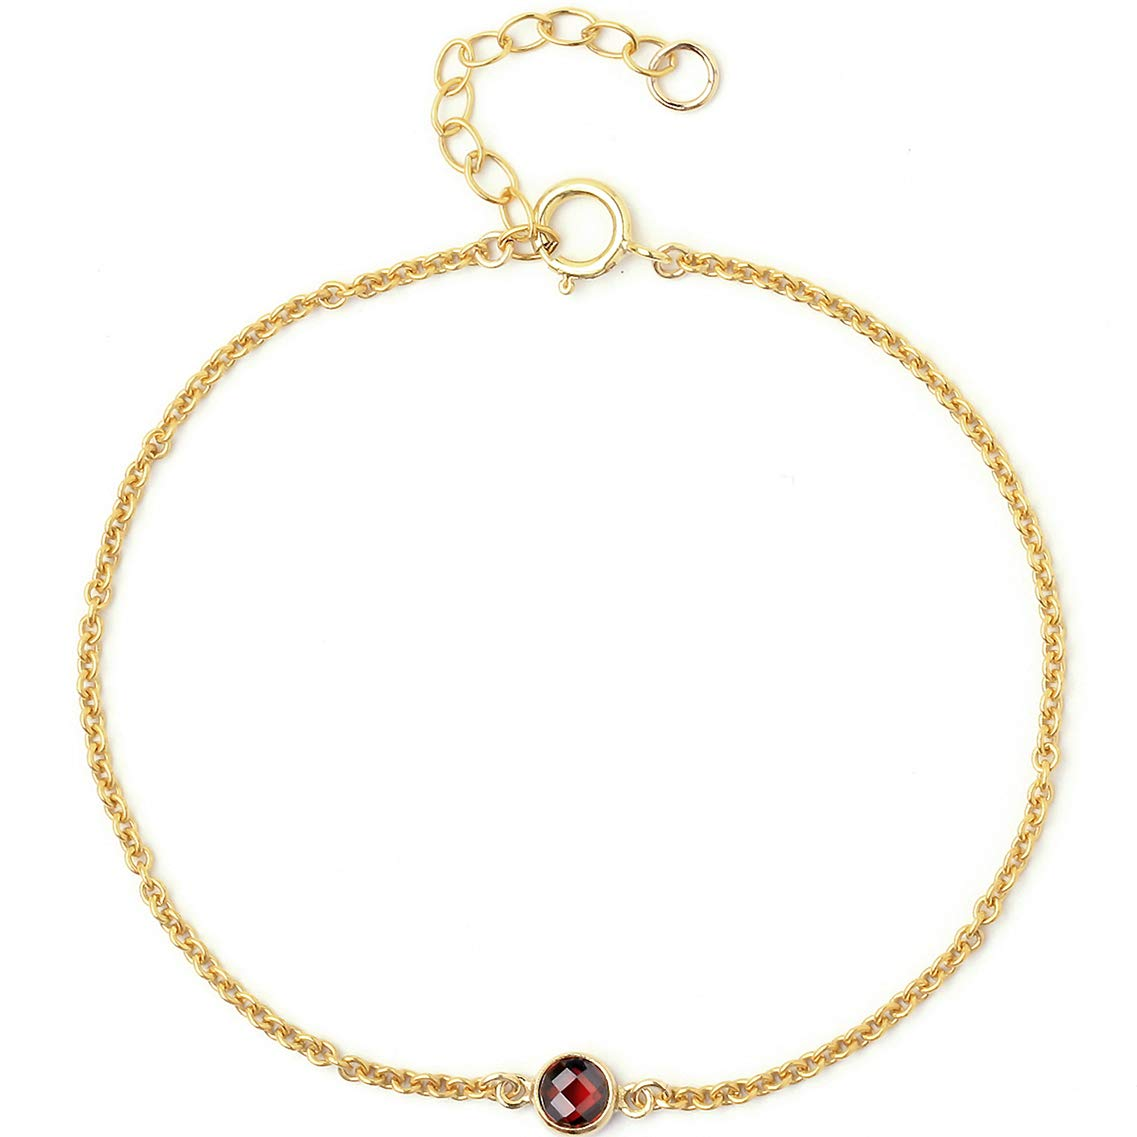 BENIQUE Dainty Bracelet For Women Girls - 14K Gold Filled Fine Chain, Simulated Freshwater Pearls, AAA CZ, Layering Essentials, Gifts for her, Made in USA, 6.5''+1'' (Garnet/GOLD)